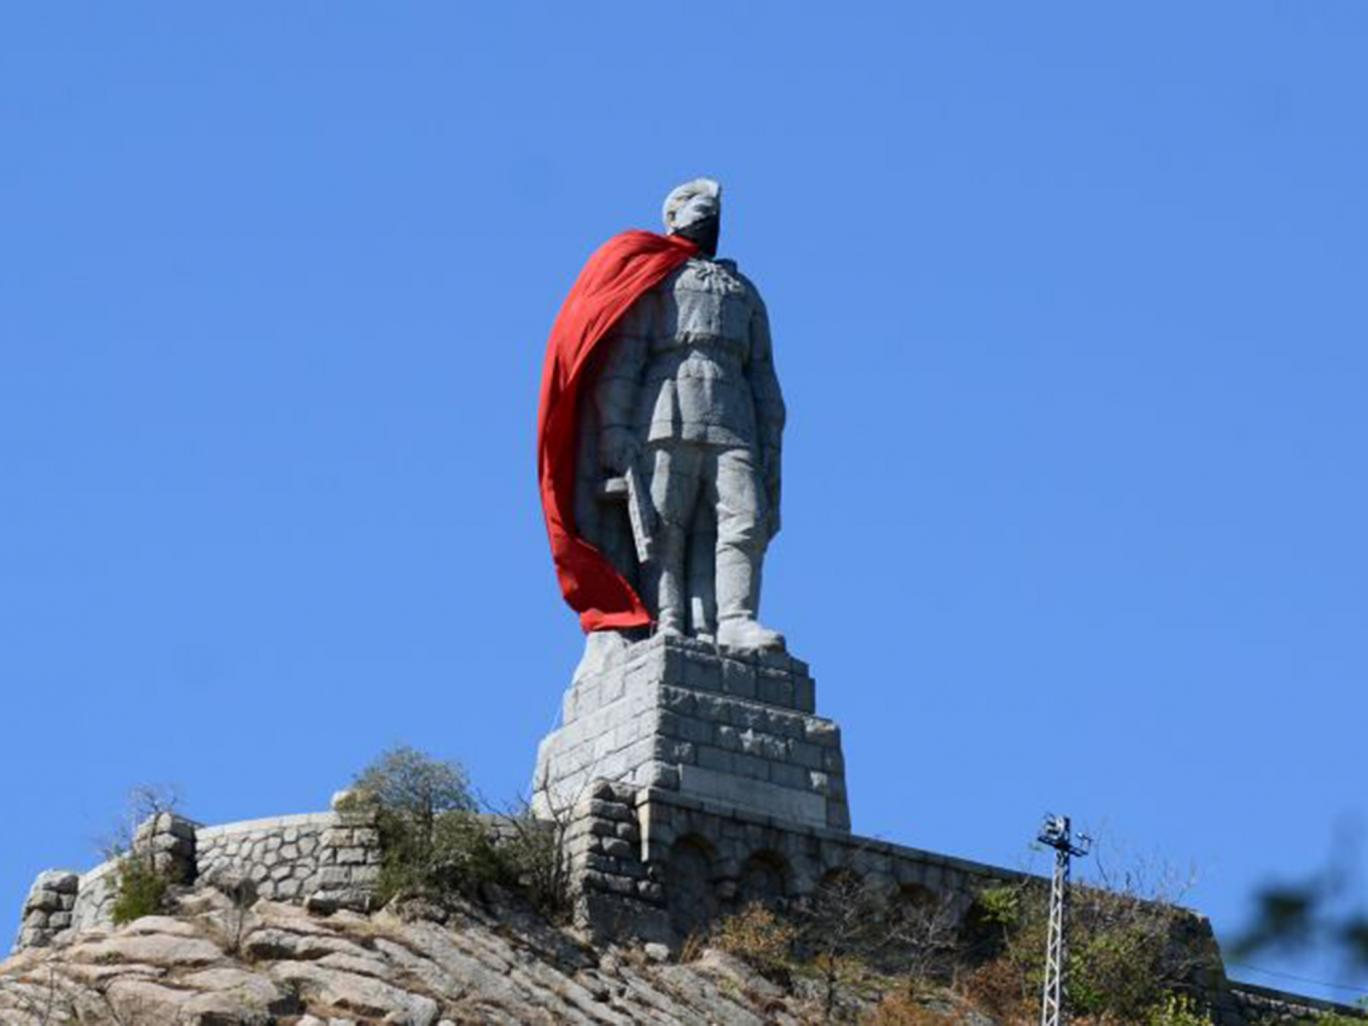 A 10.5-meter high monument of a Soviet soldier draped with a red cloak in the Bulgarian city of Plovdiv Getty